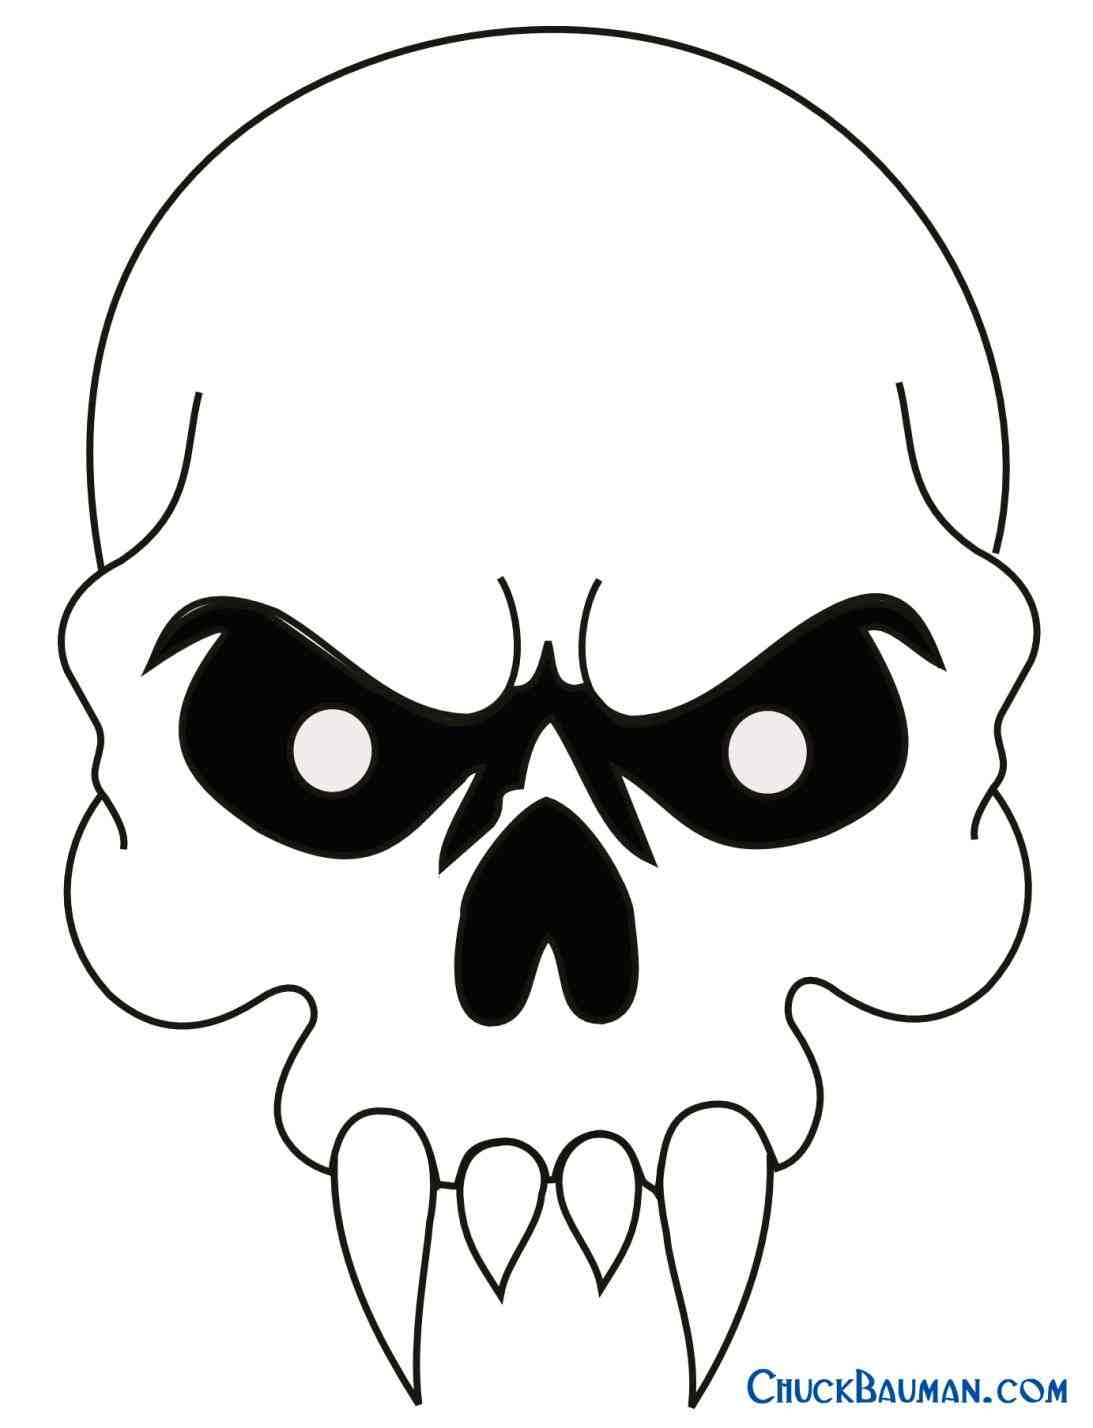 1093x1428 Art Simple Skull Drawings With Flowers Easy Rose Free Download